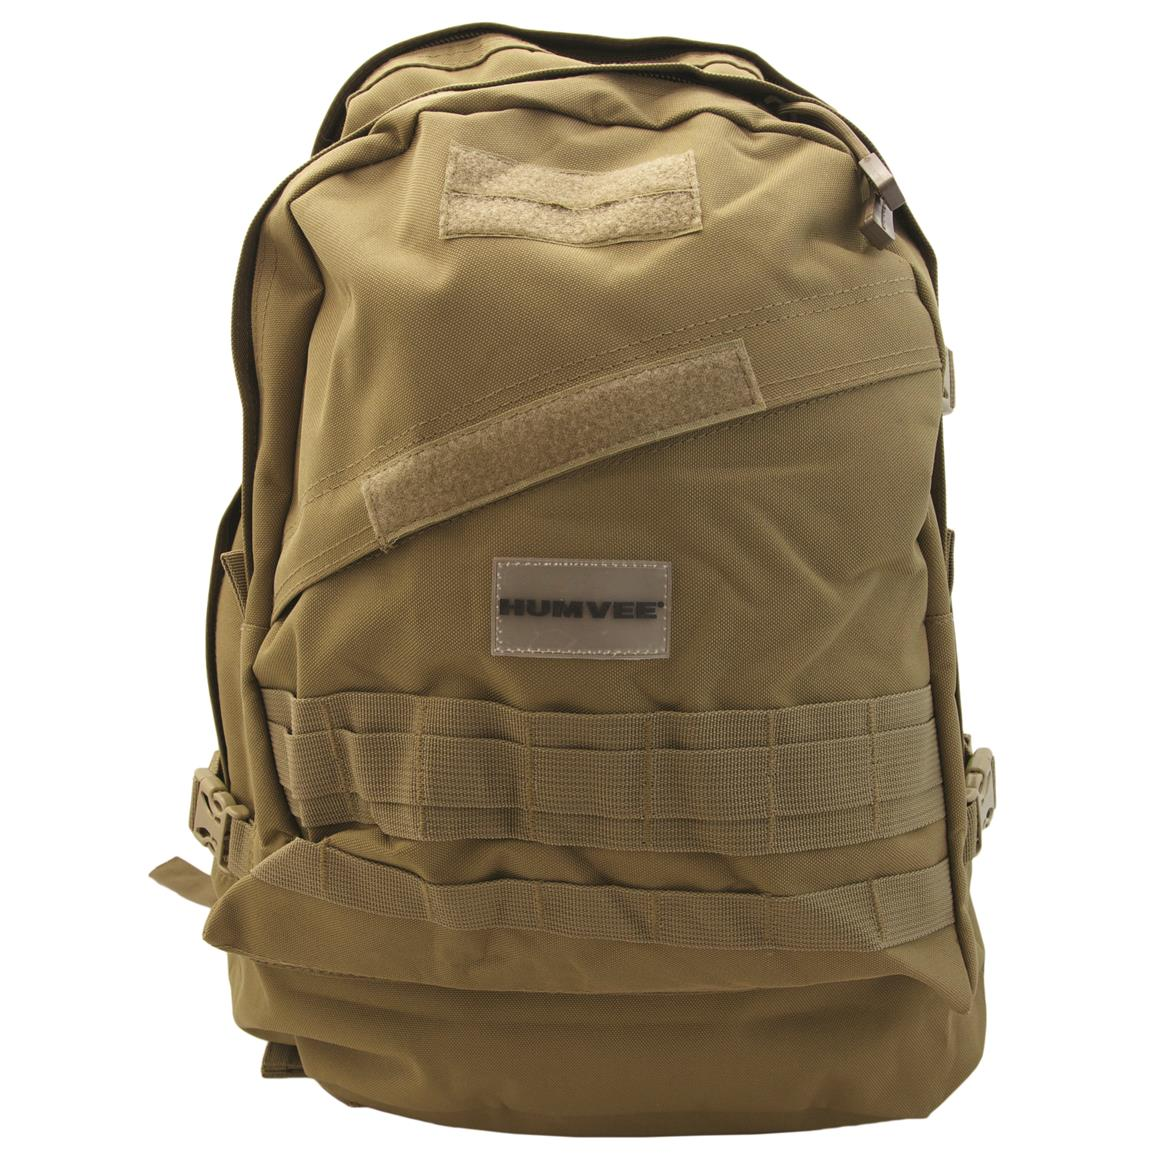 Humvee Day Pack Gear Bag, Tan